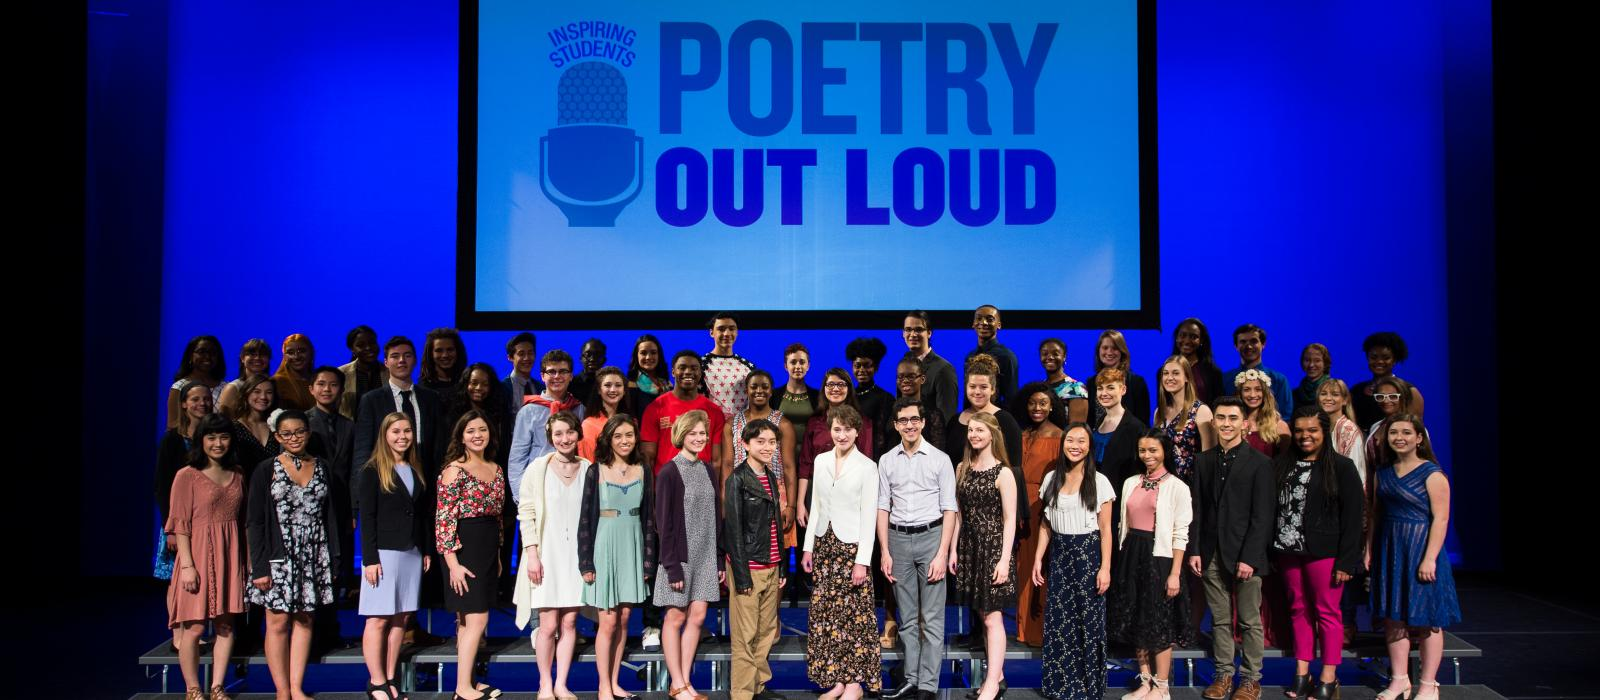 Teenagers from every state on state for a poetry recitation contest.